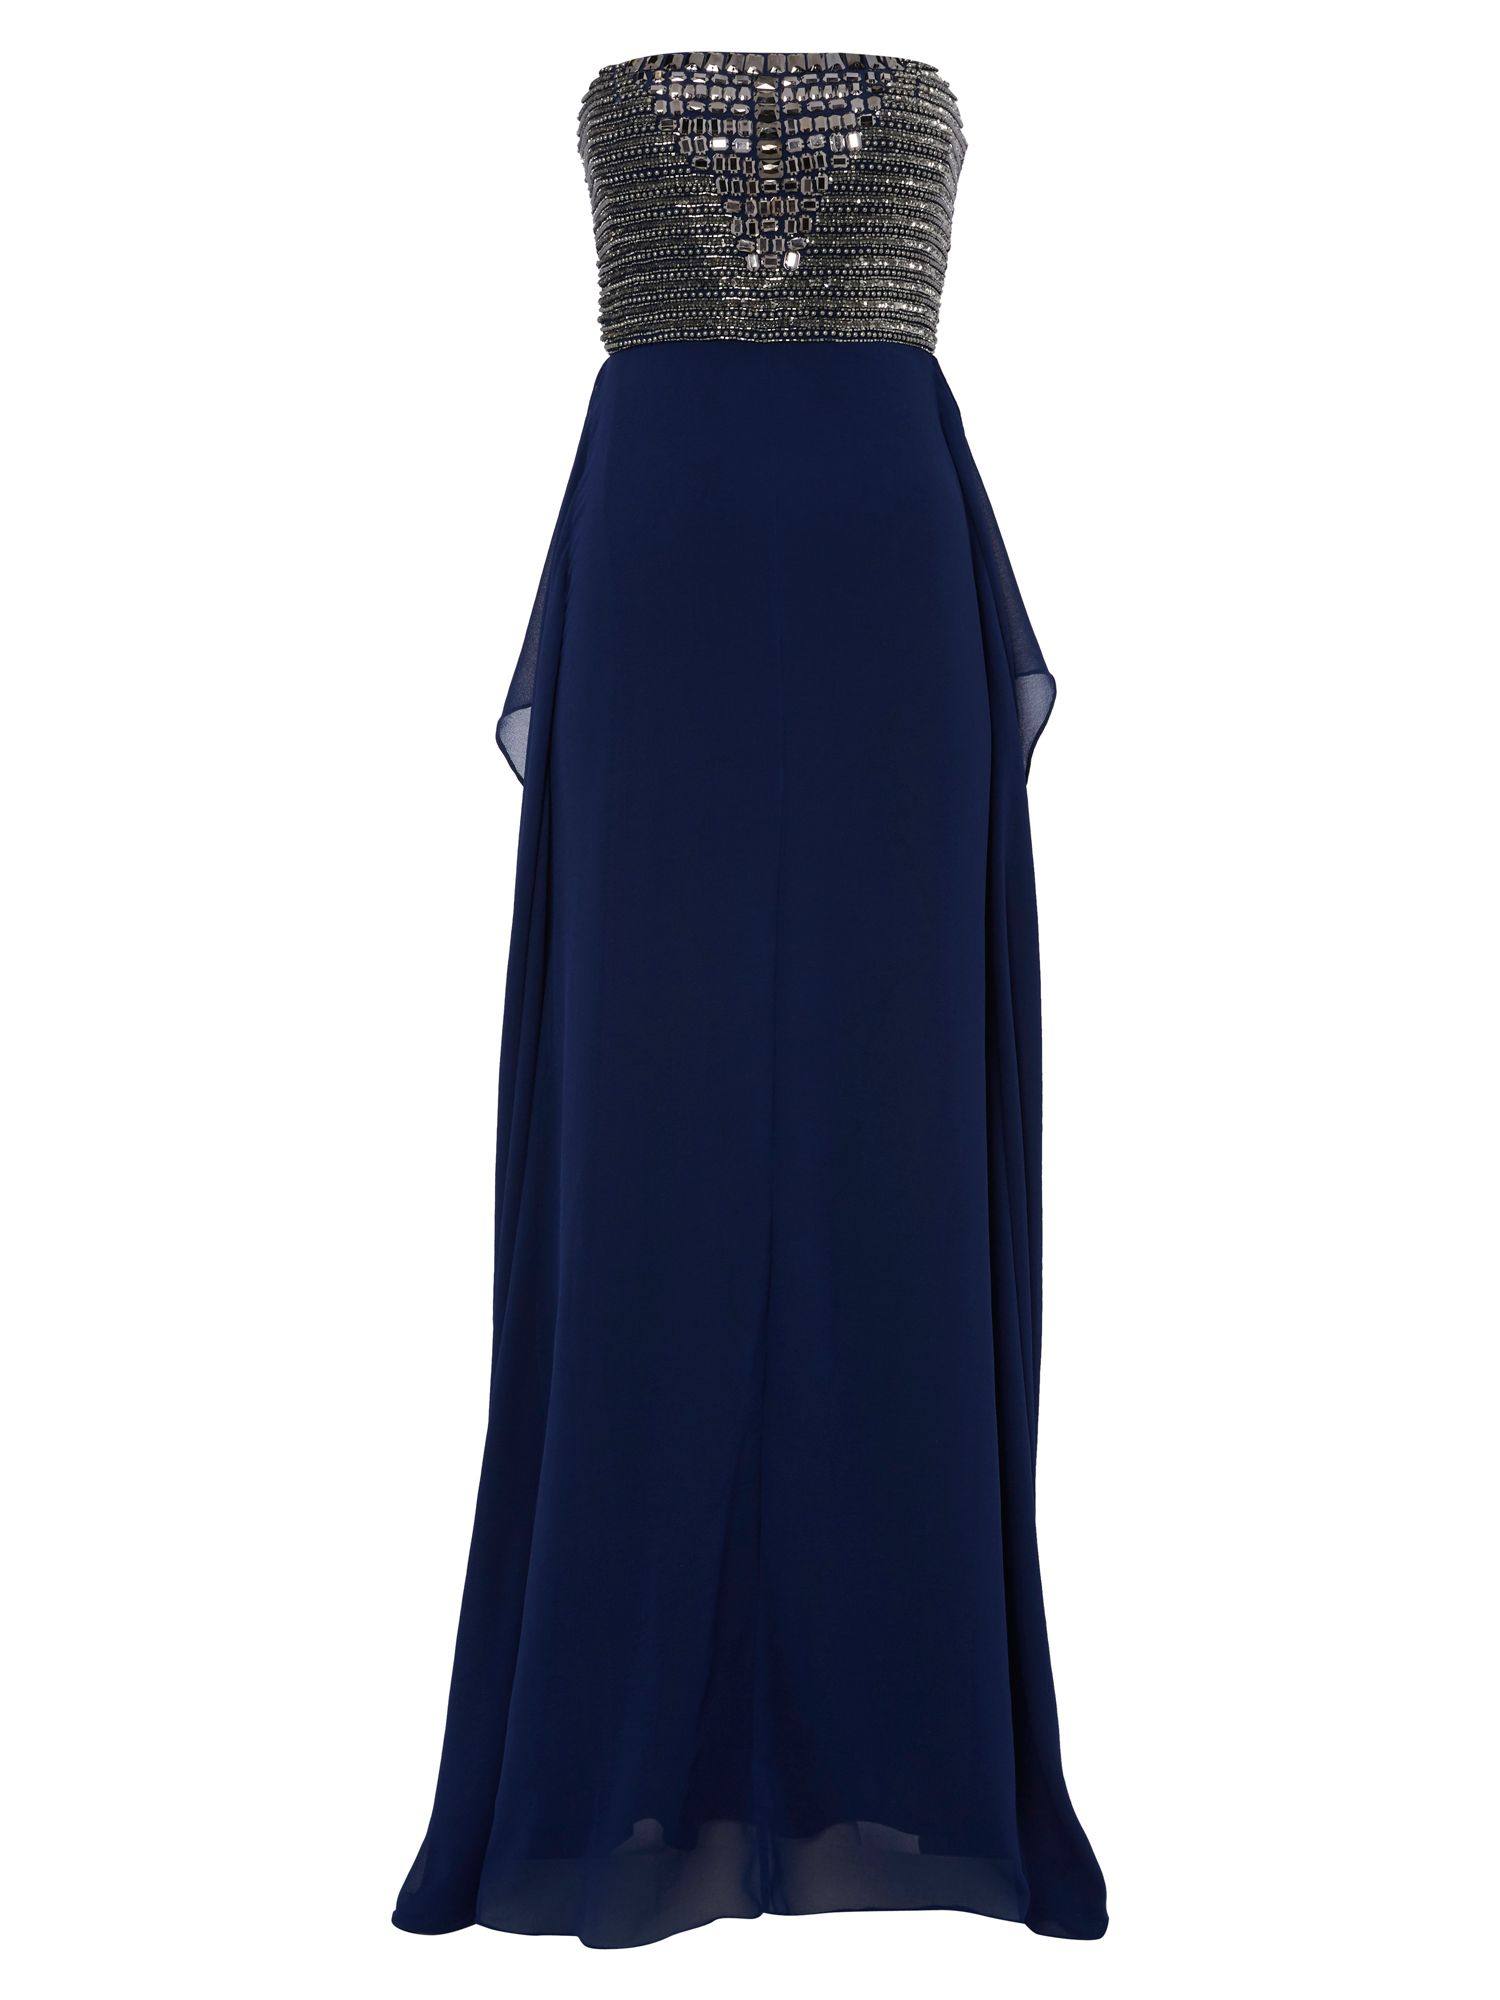 RAISHMA Navy with Mercury Embellishment Gown, Blue